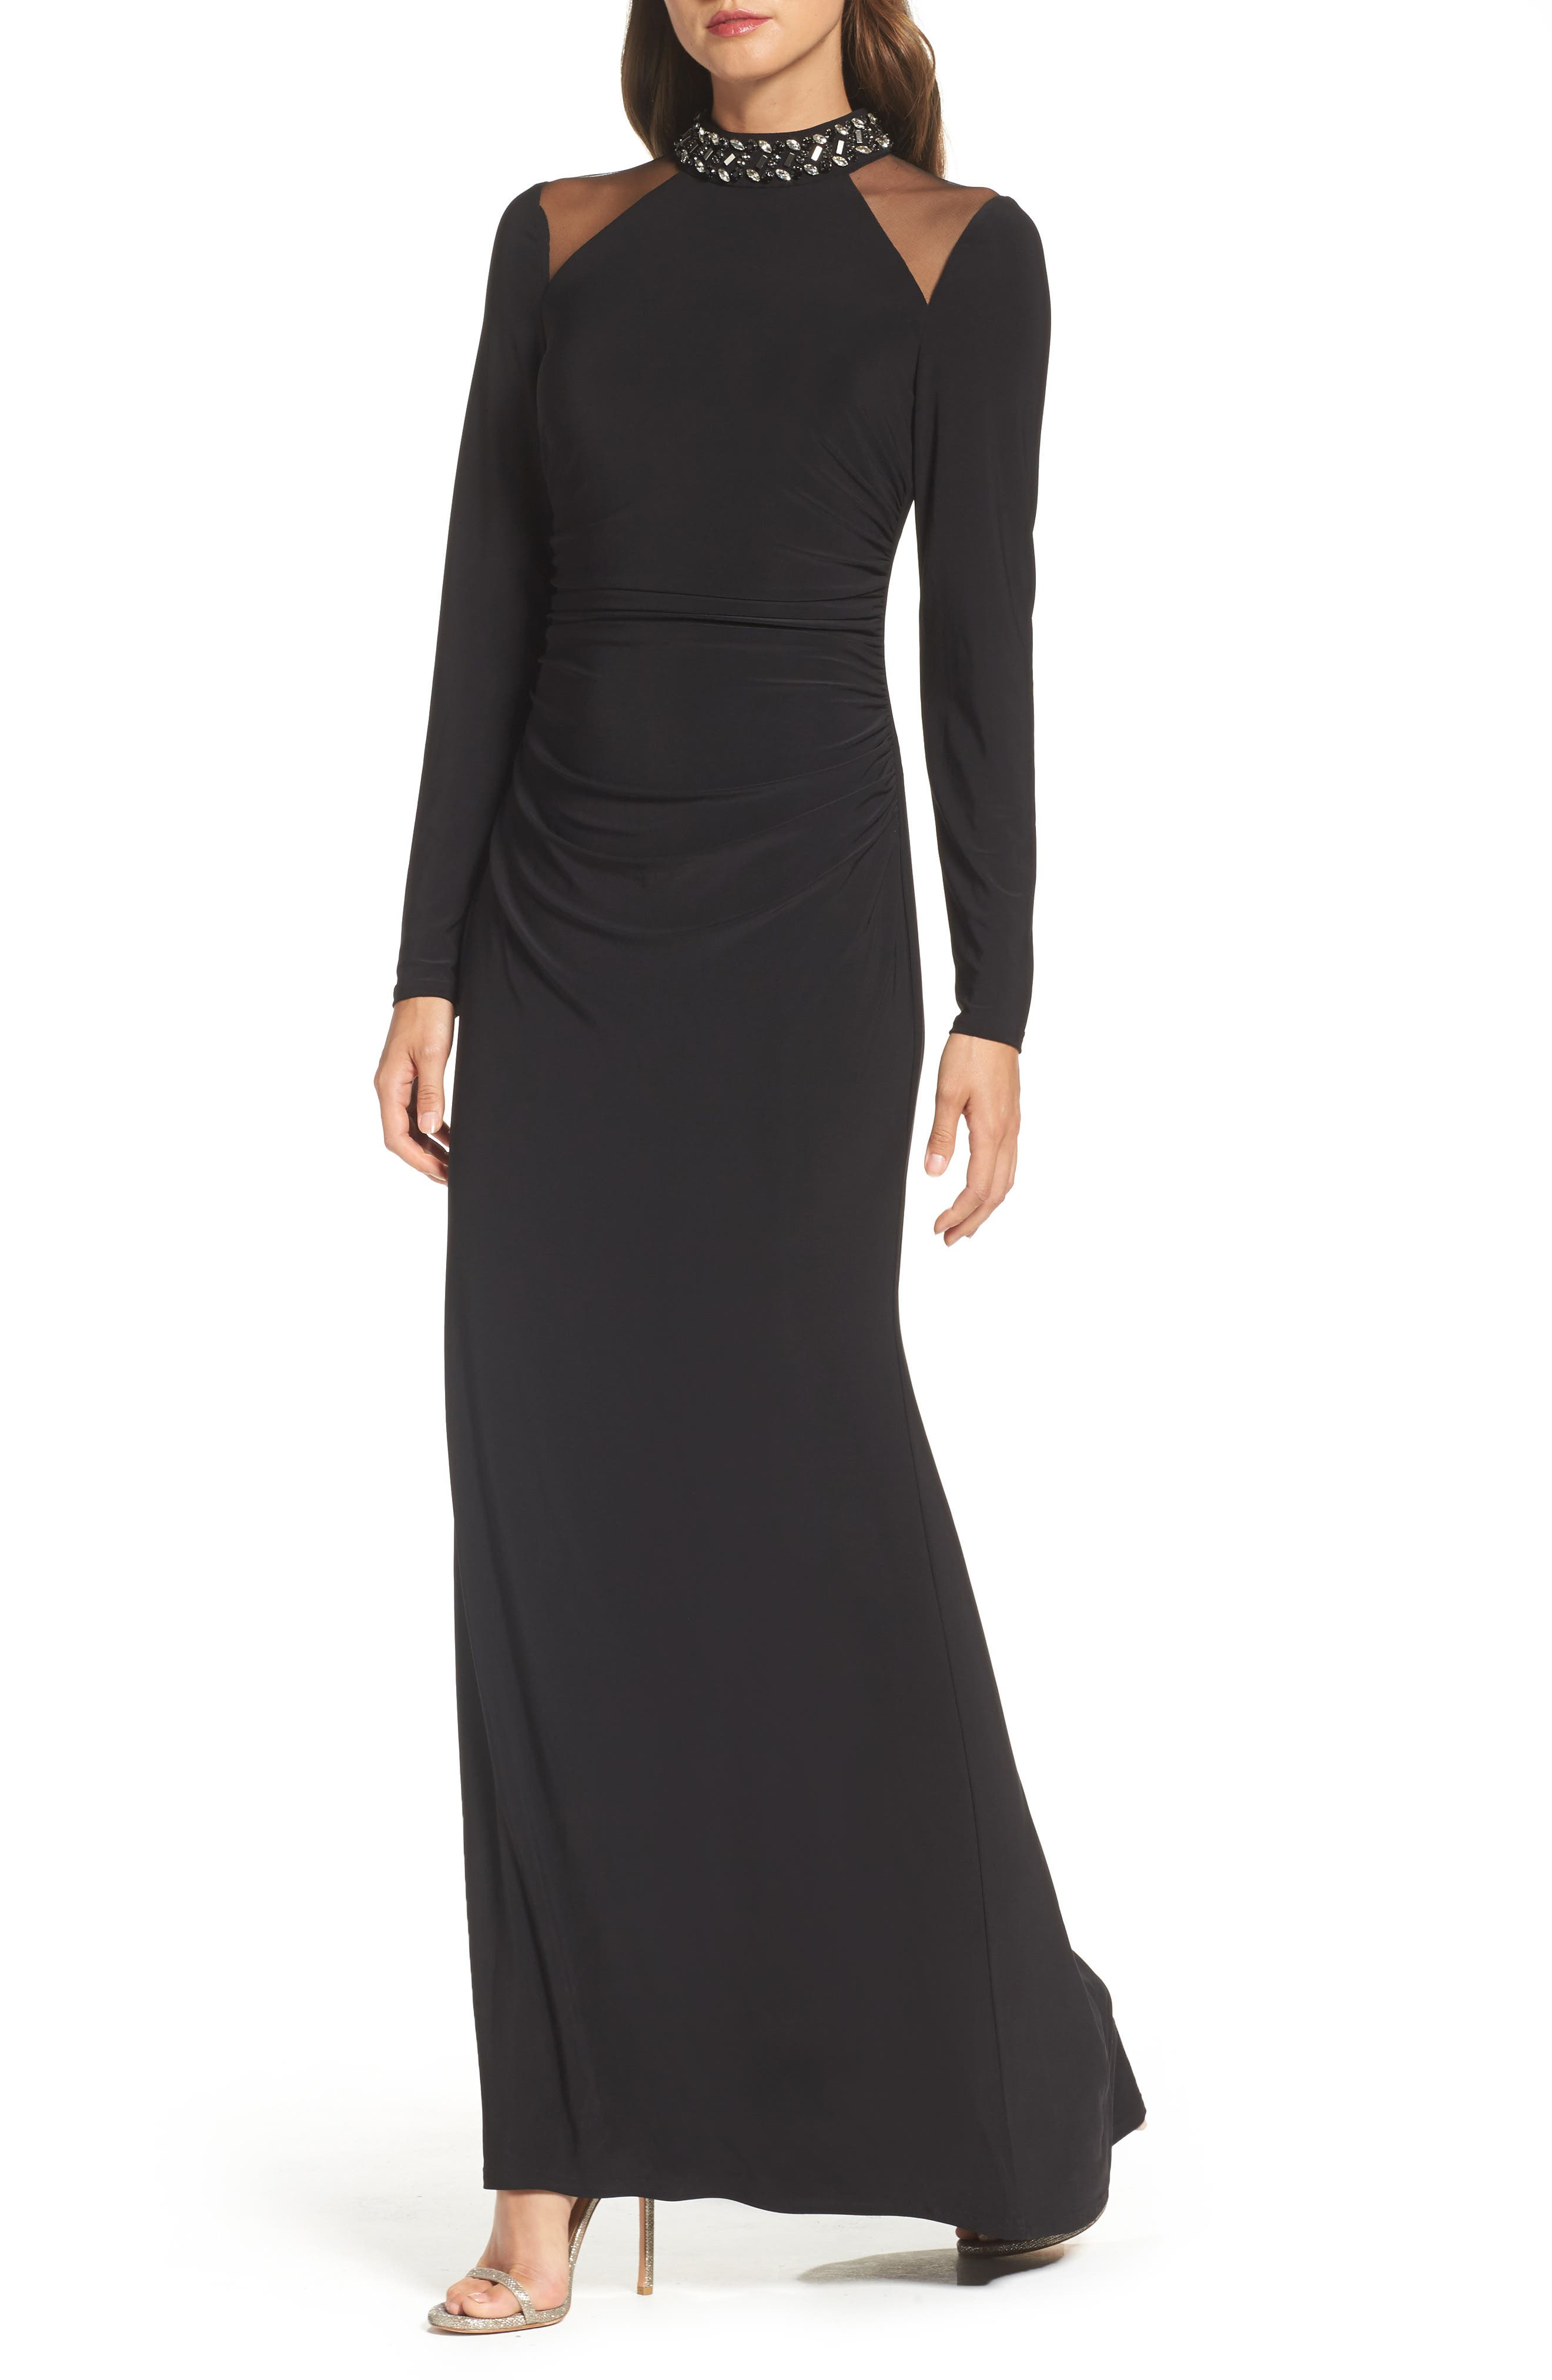 Alternate Image 1 Selected - Vince Camuto Mesh Panel Gown